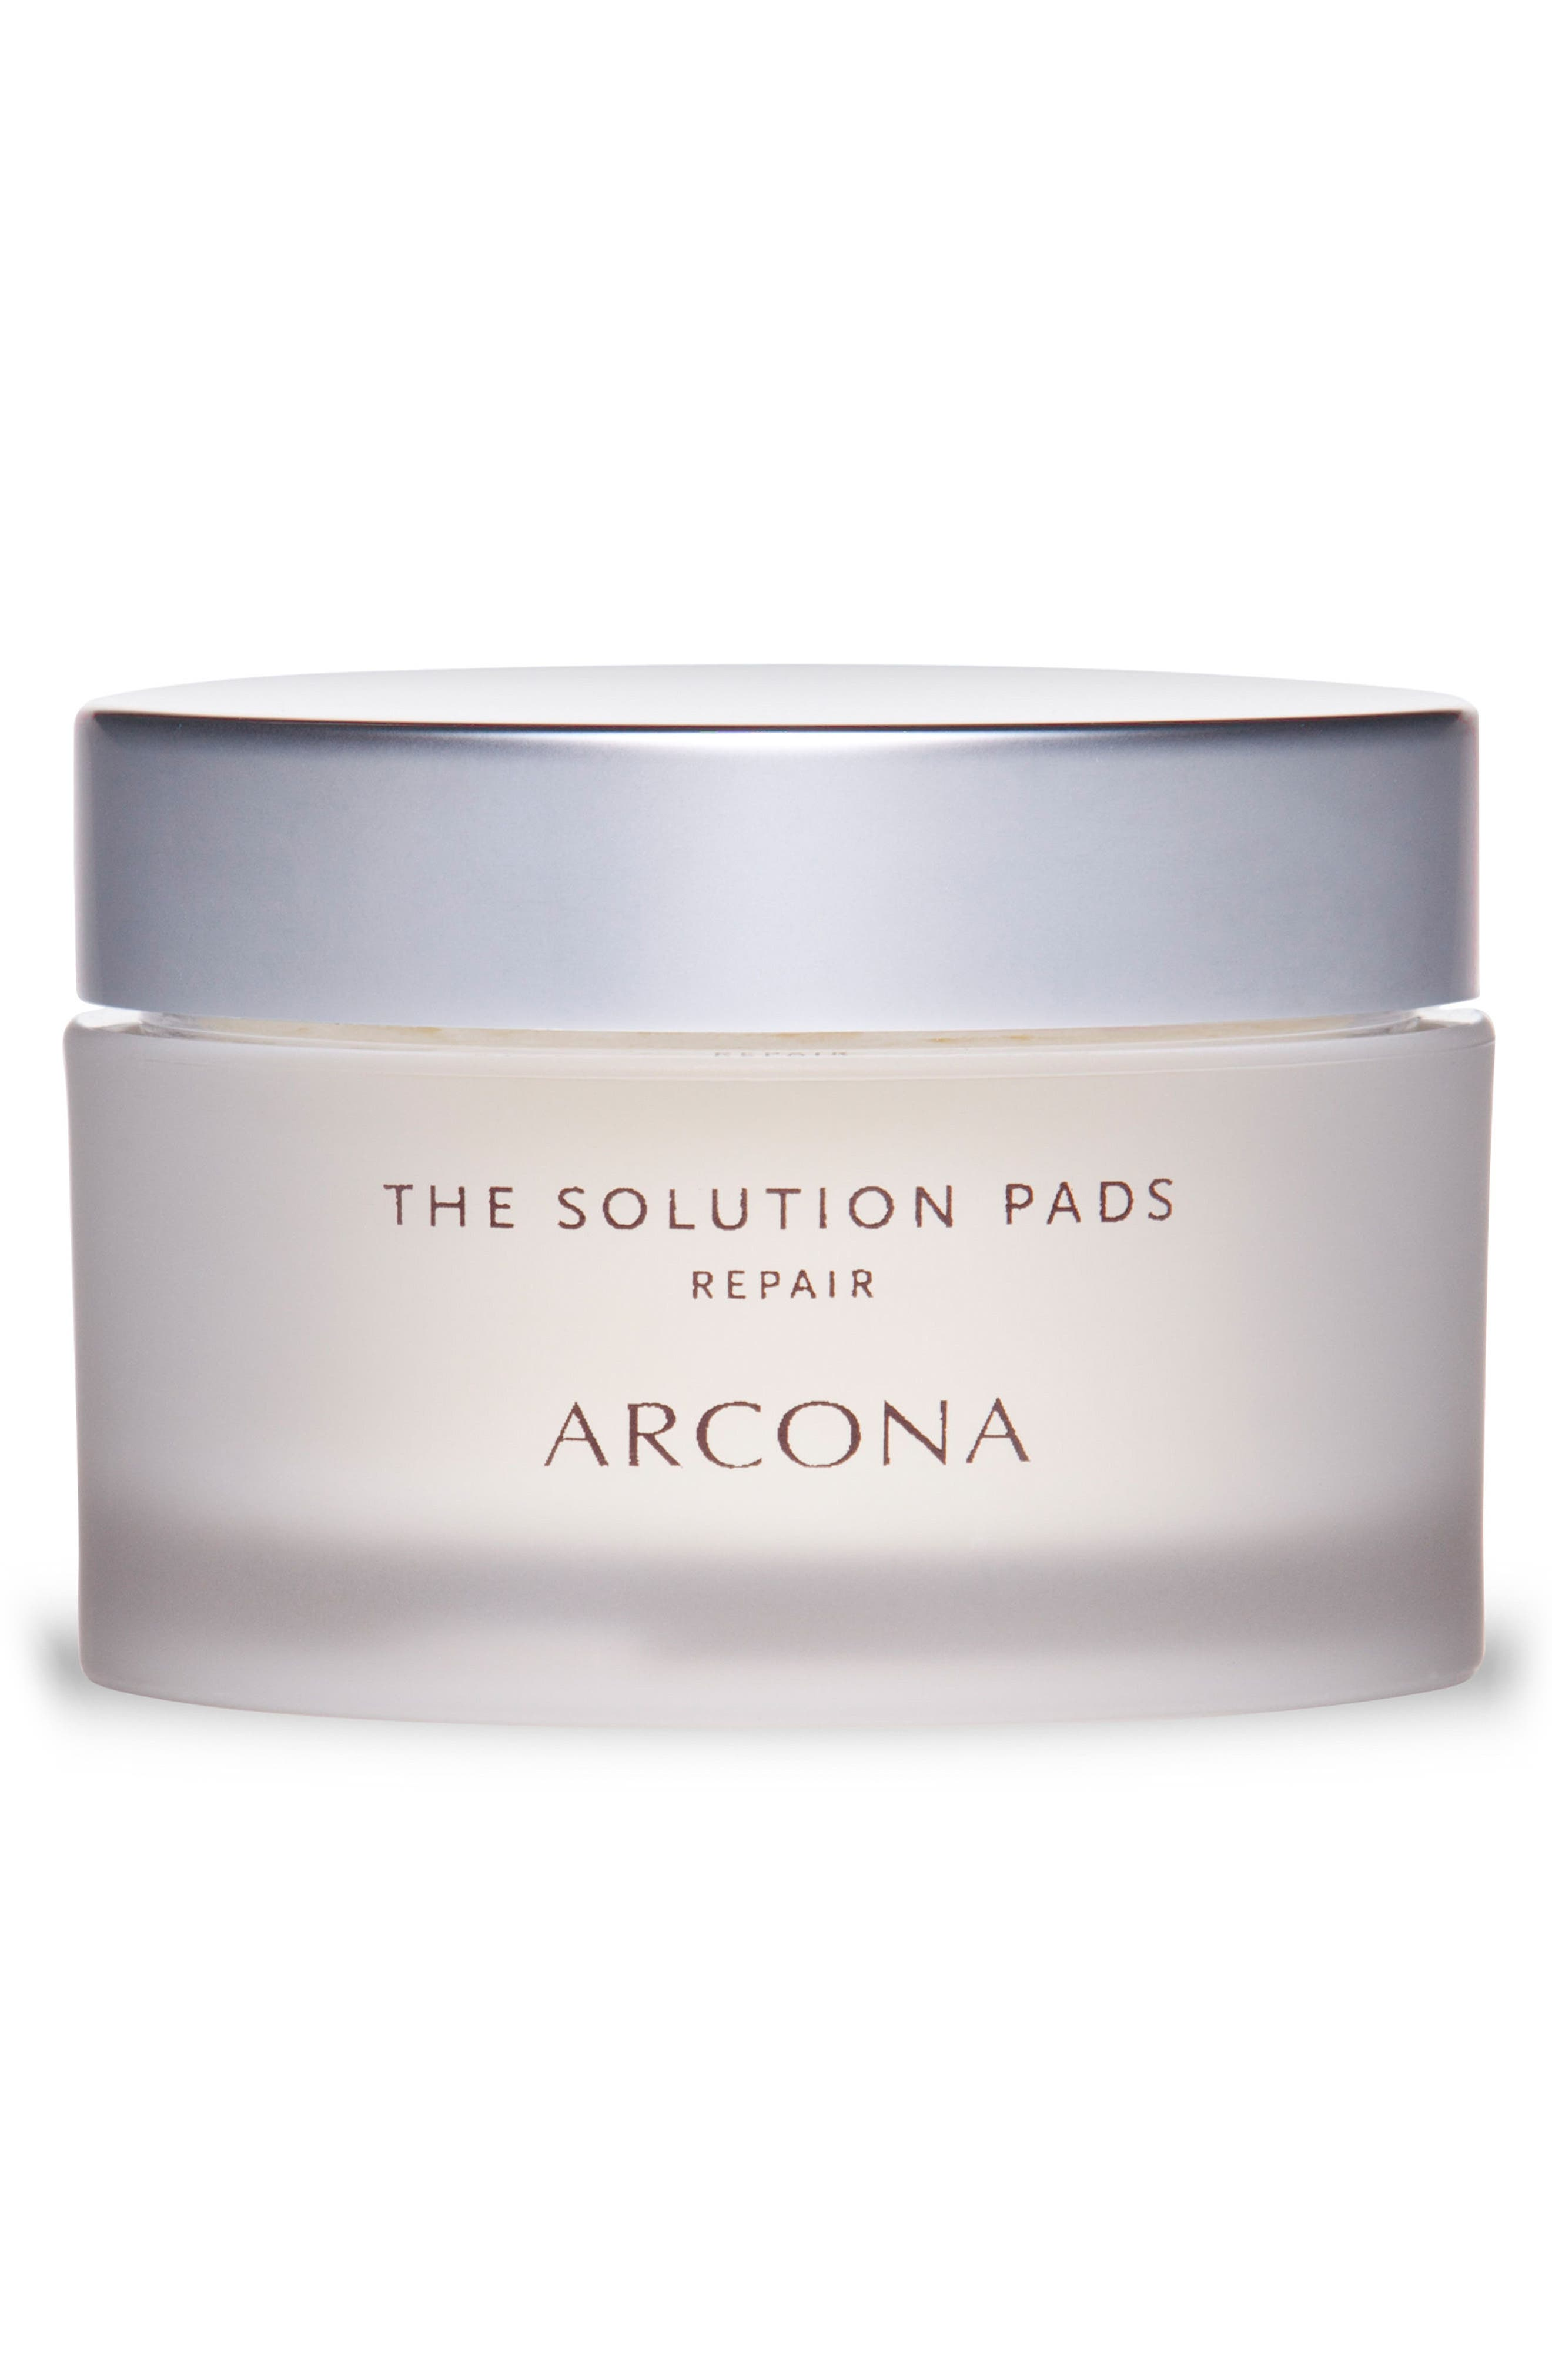 Alternate Image 1 Selected - ARCONA The Solution Pads